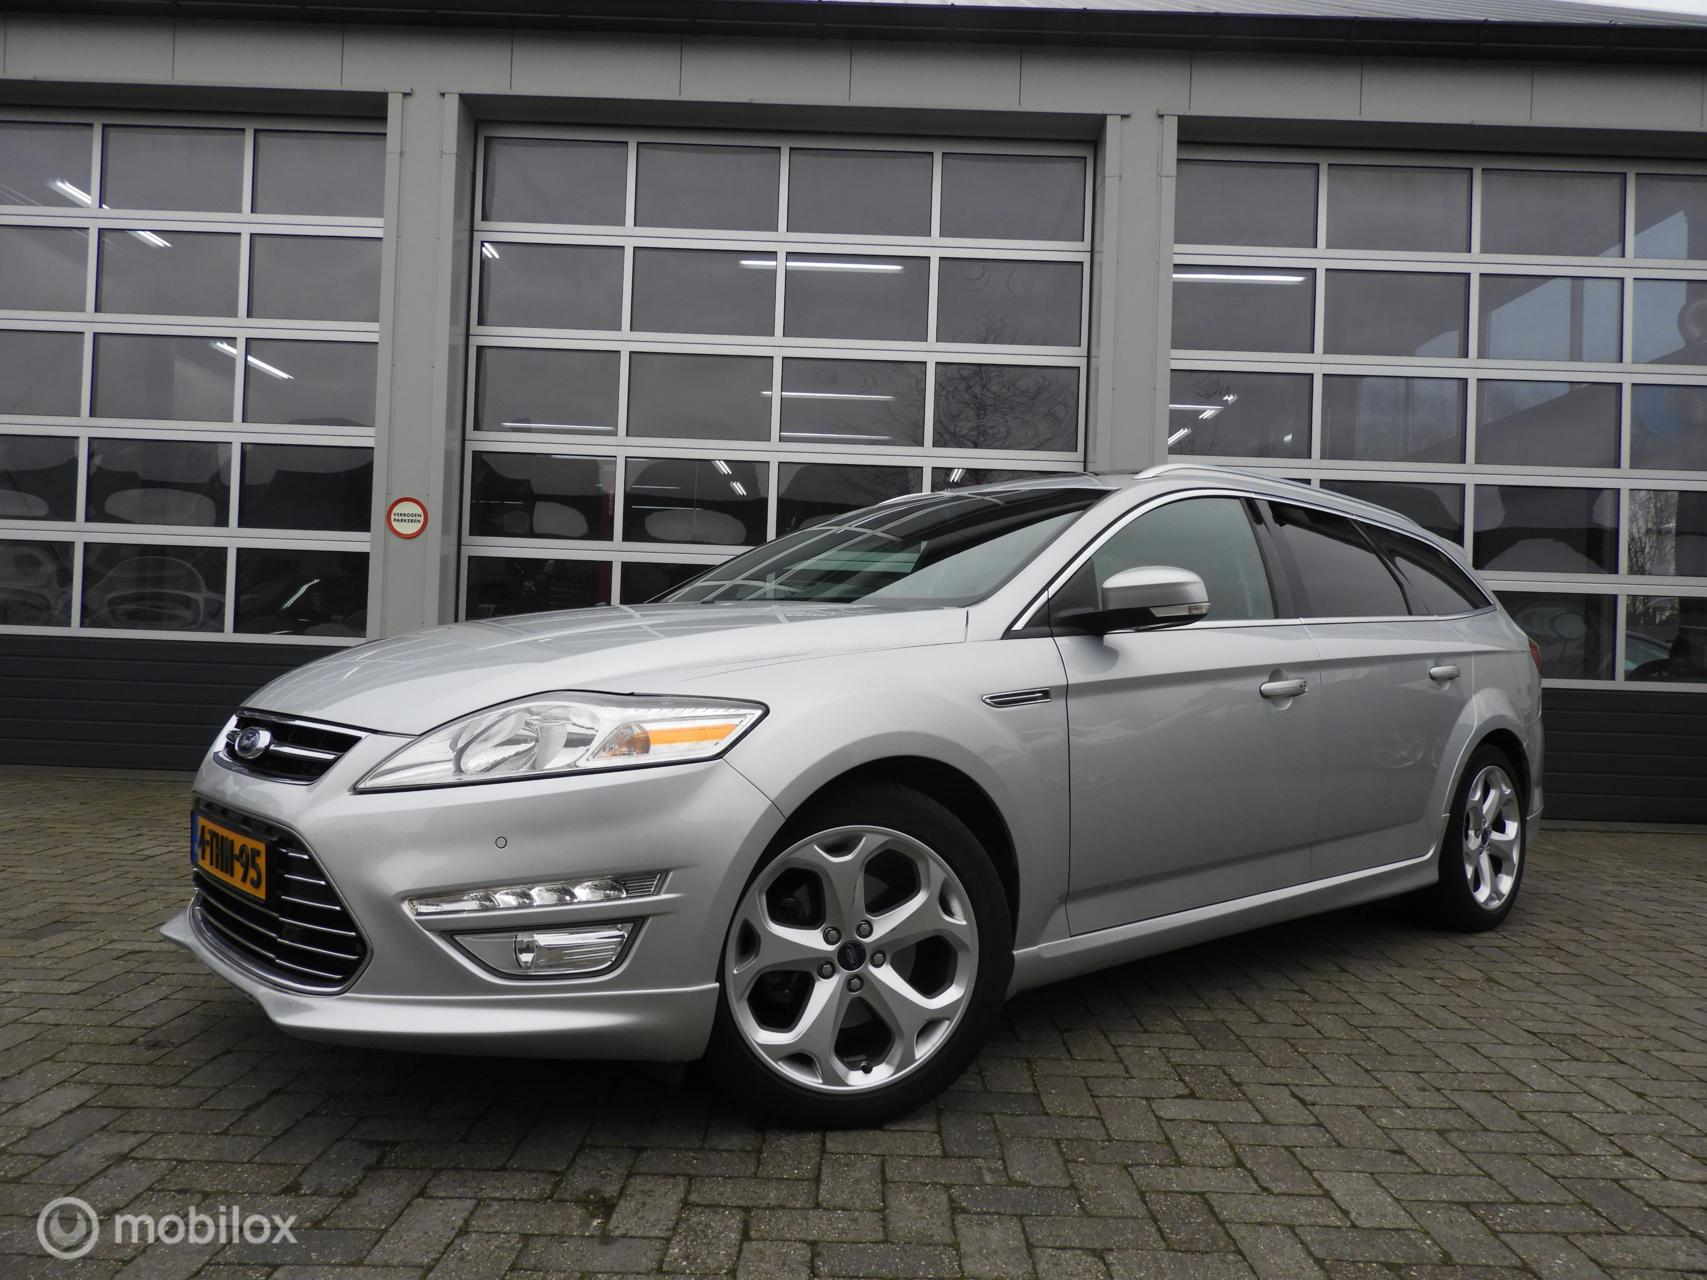 Ford Mondeo Wagon 2.2 TDCi S-Edition